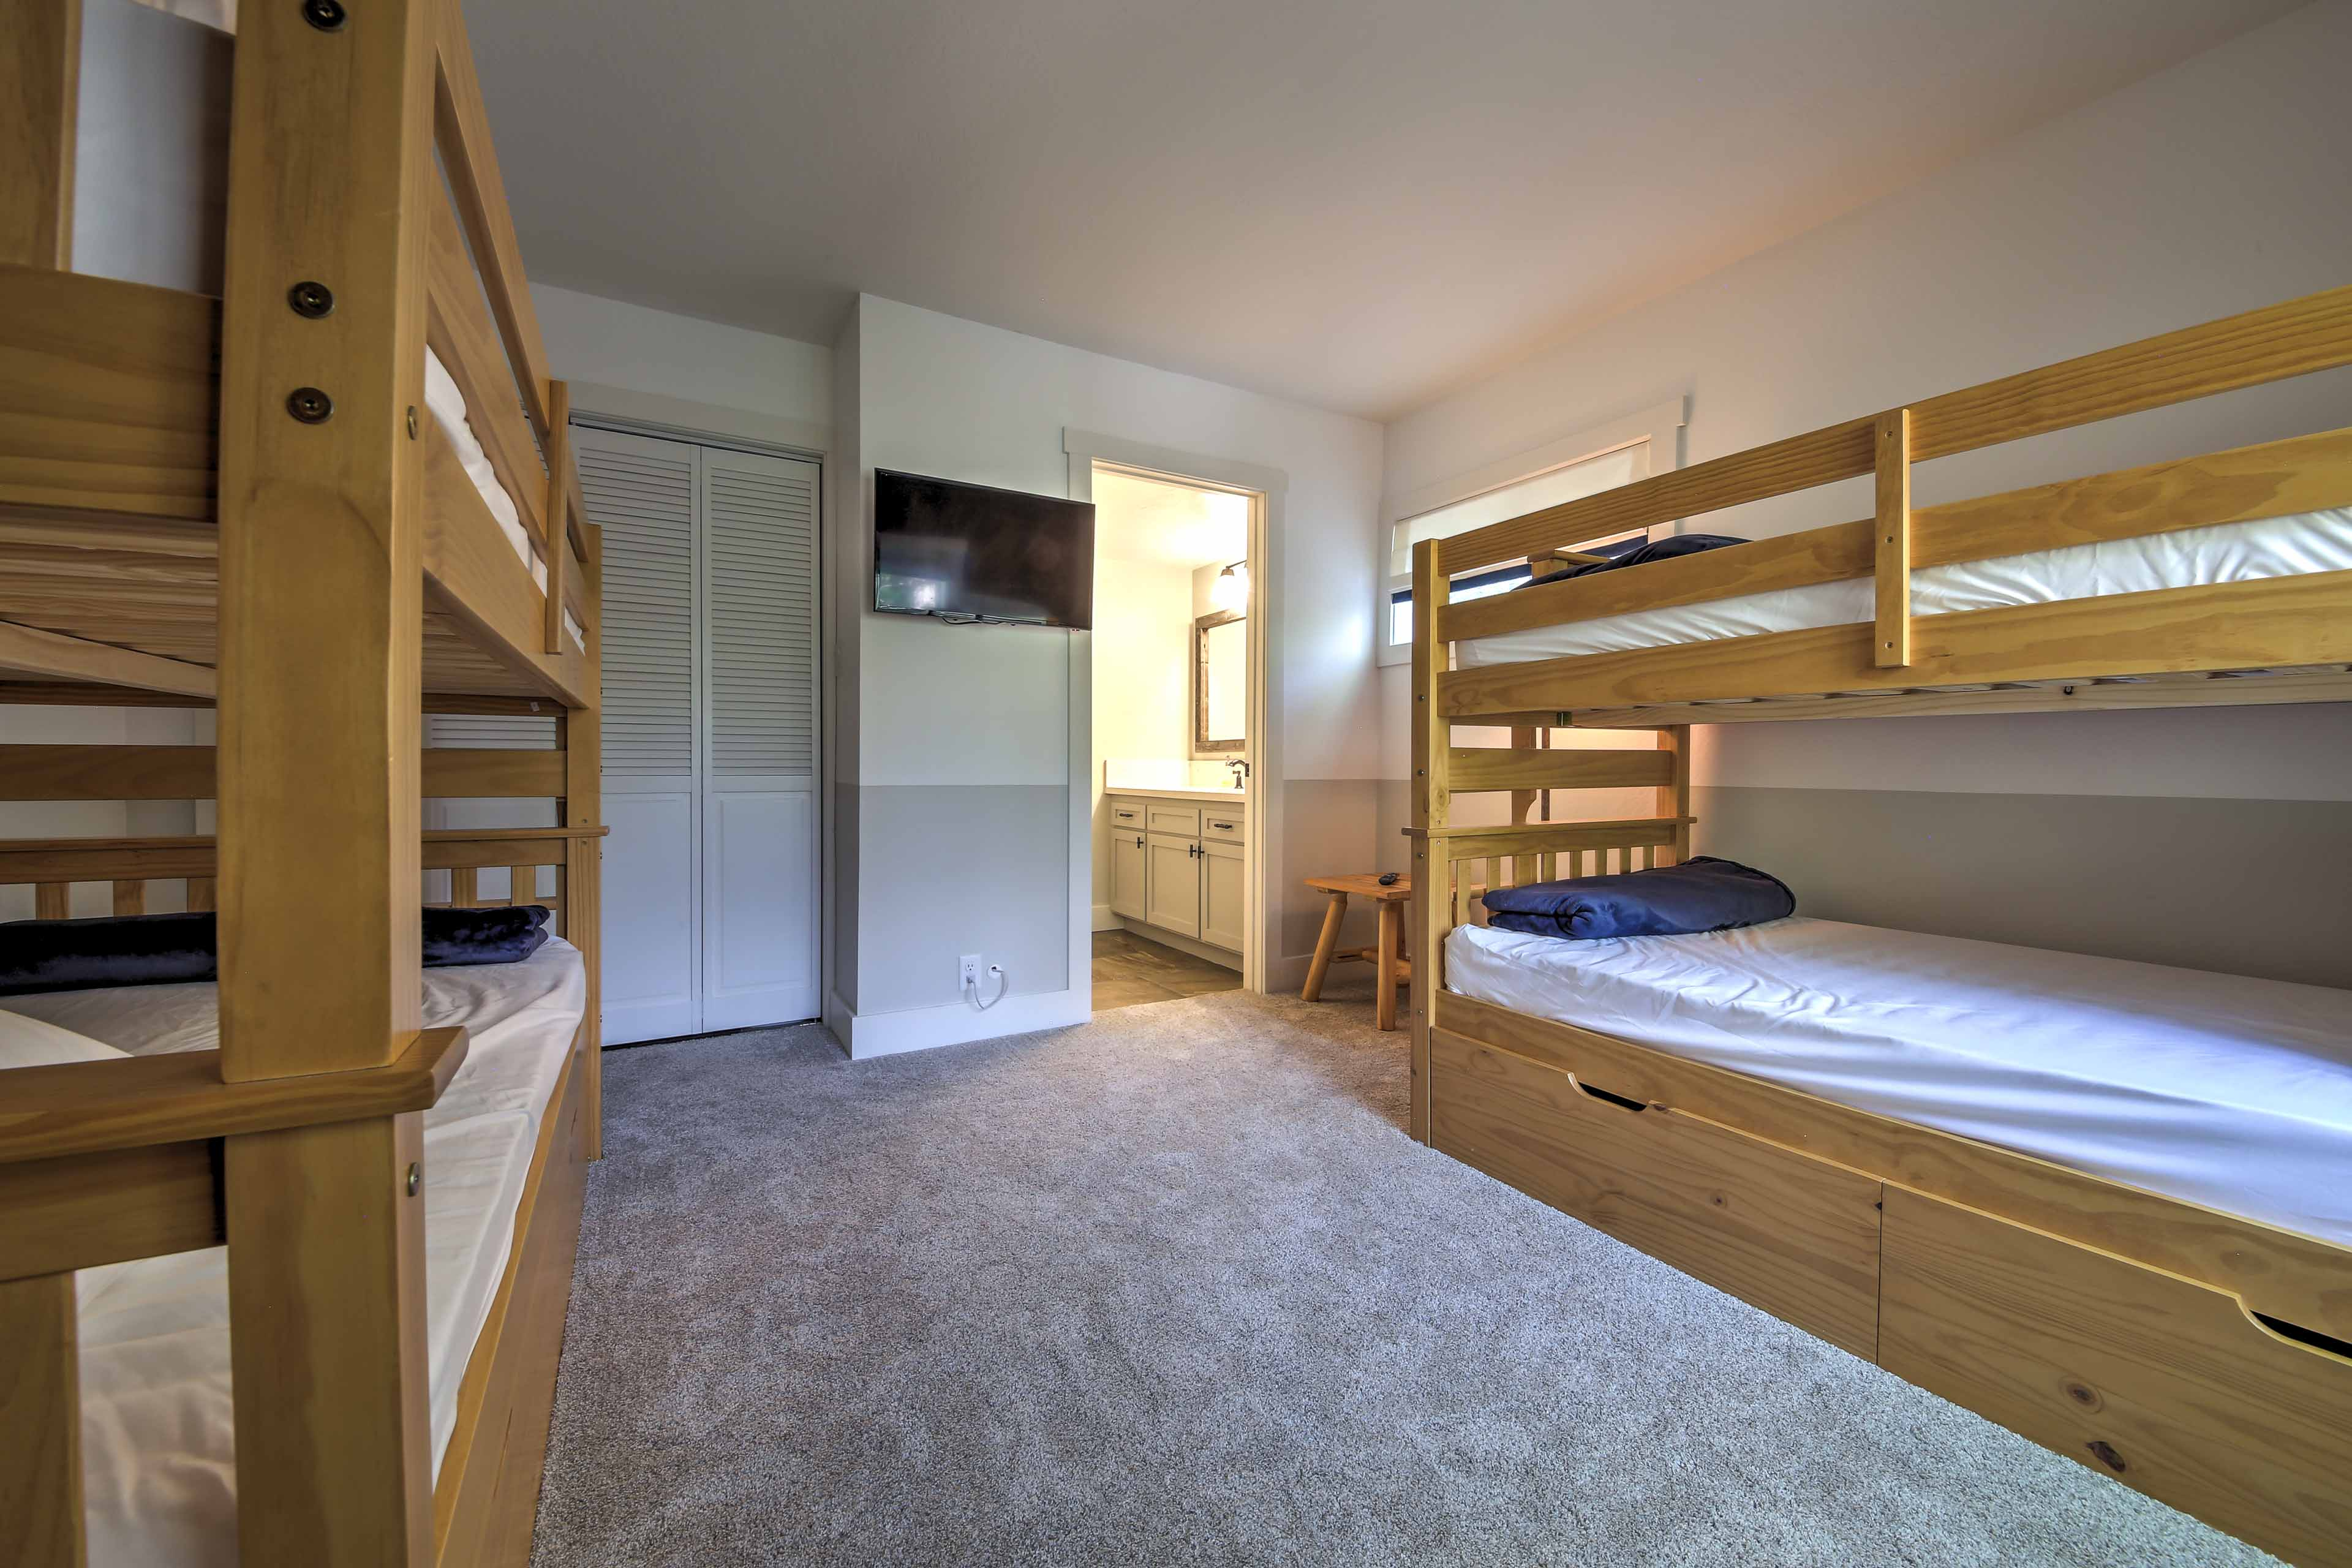 Two guests can sleep in the twin/twin bunk bed (only 1 is available now).